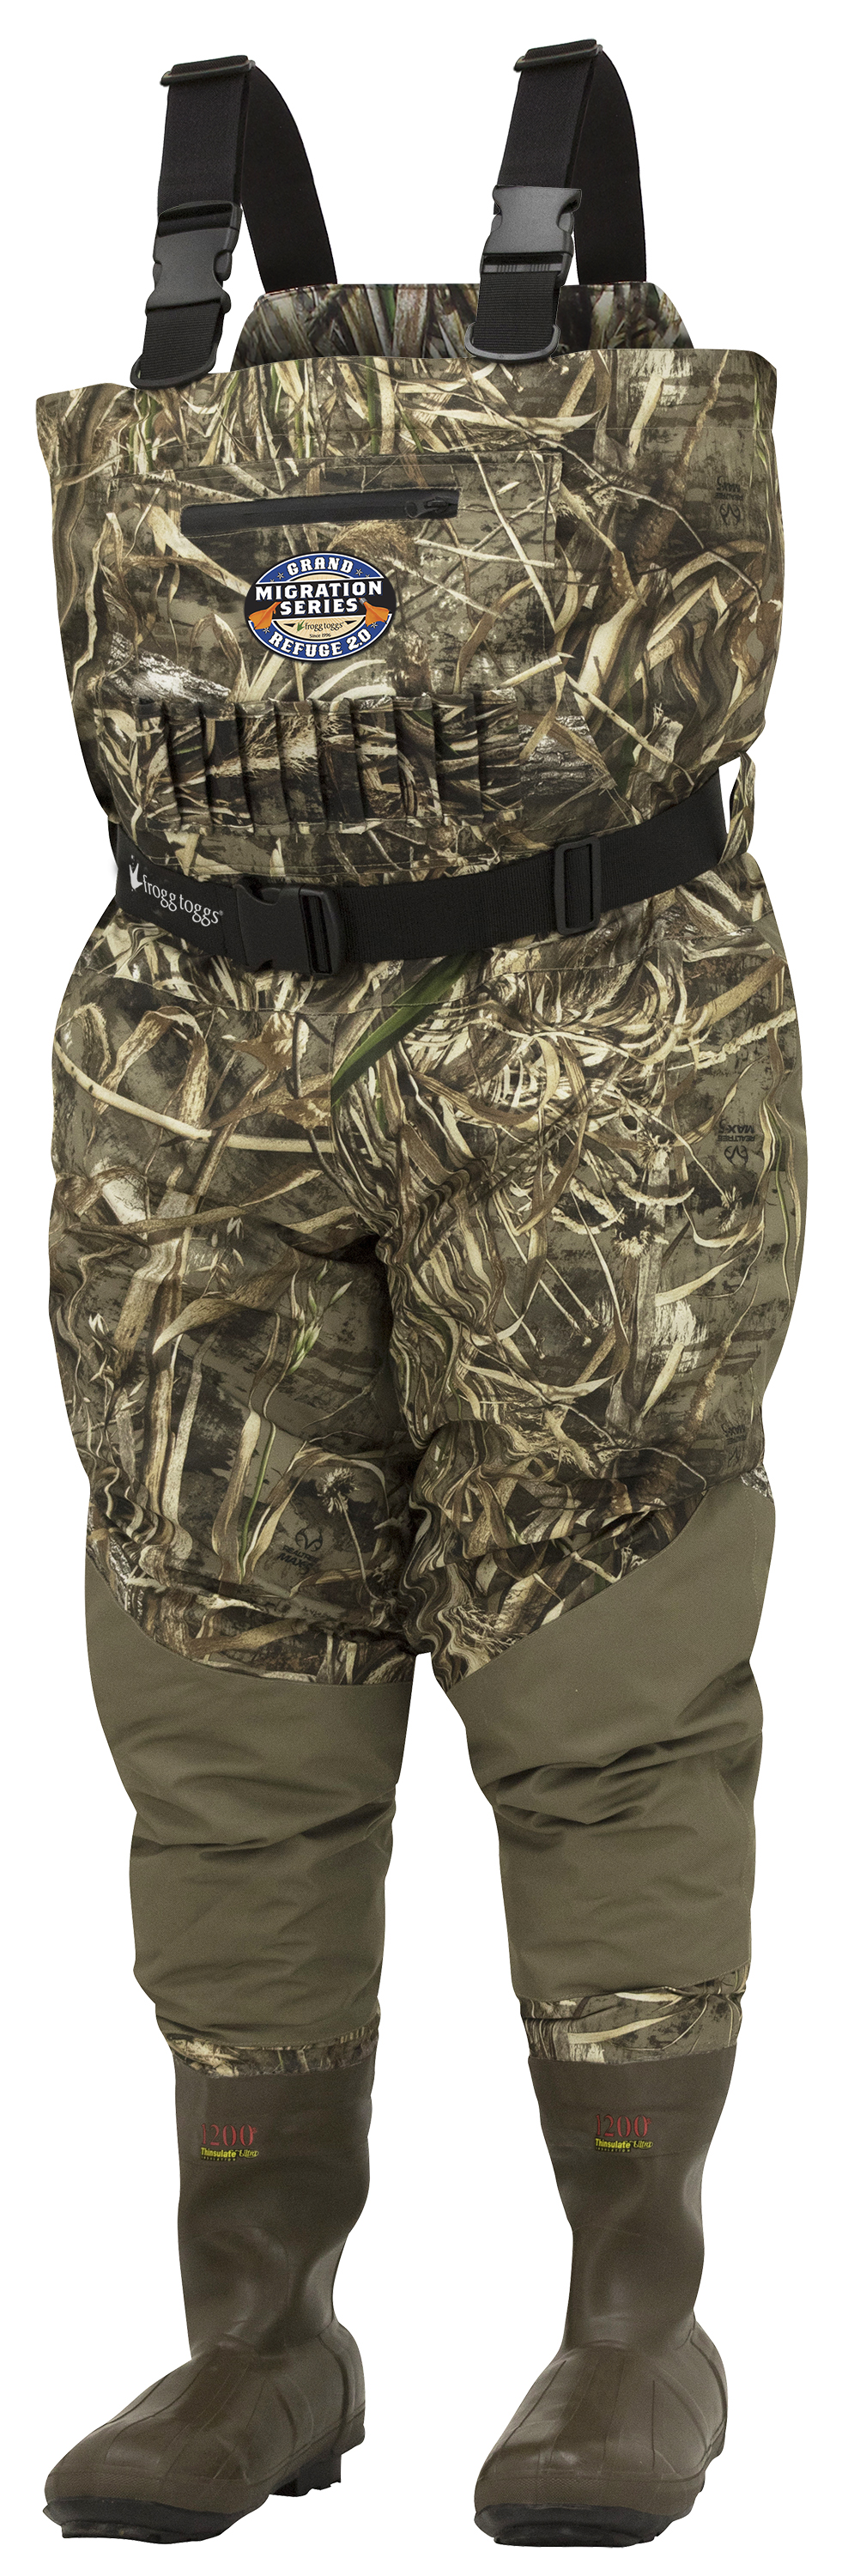 Frogg Toggs Grand Refuge 2.0 Breathable & Insulated Chest Wader by Frogg Toggs